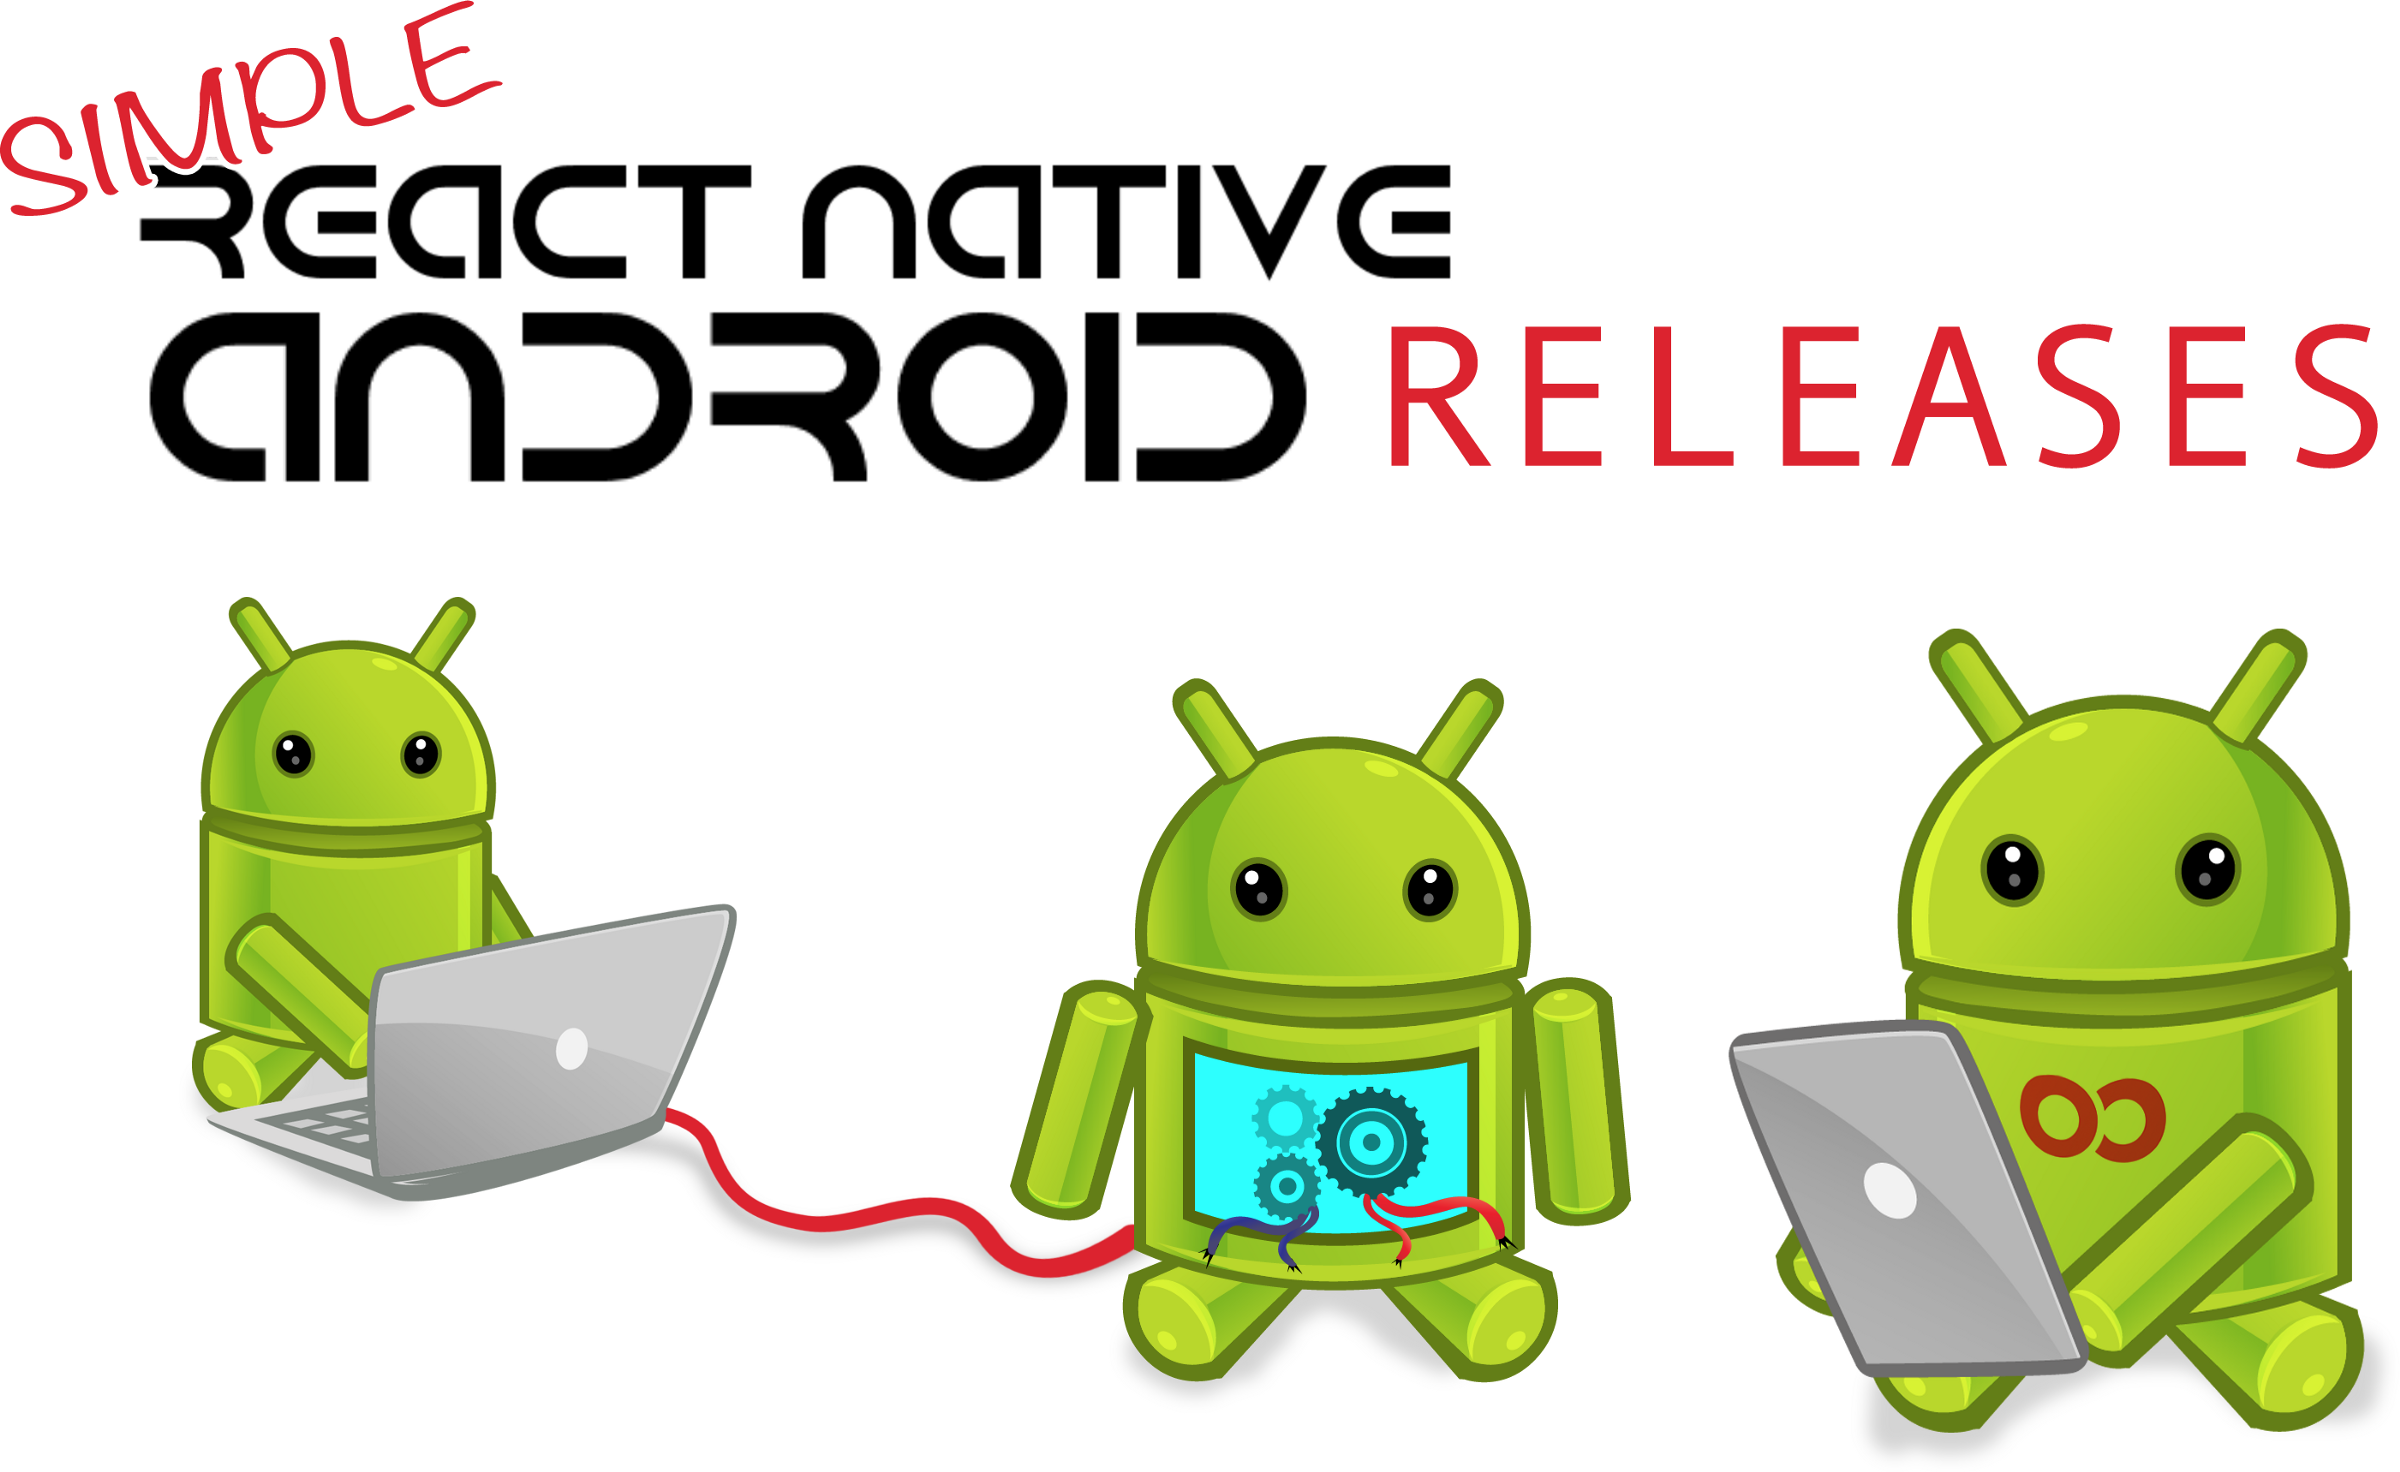 play store apk android 4.2.2